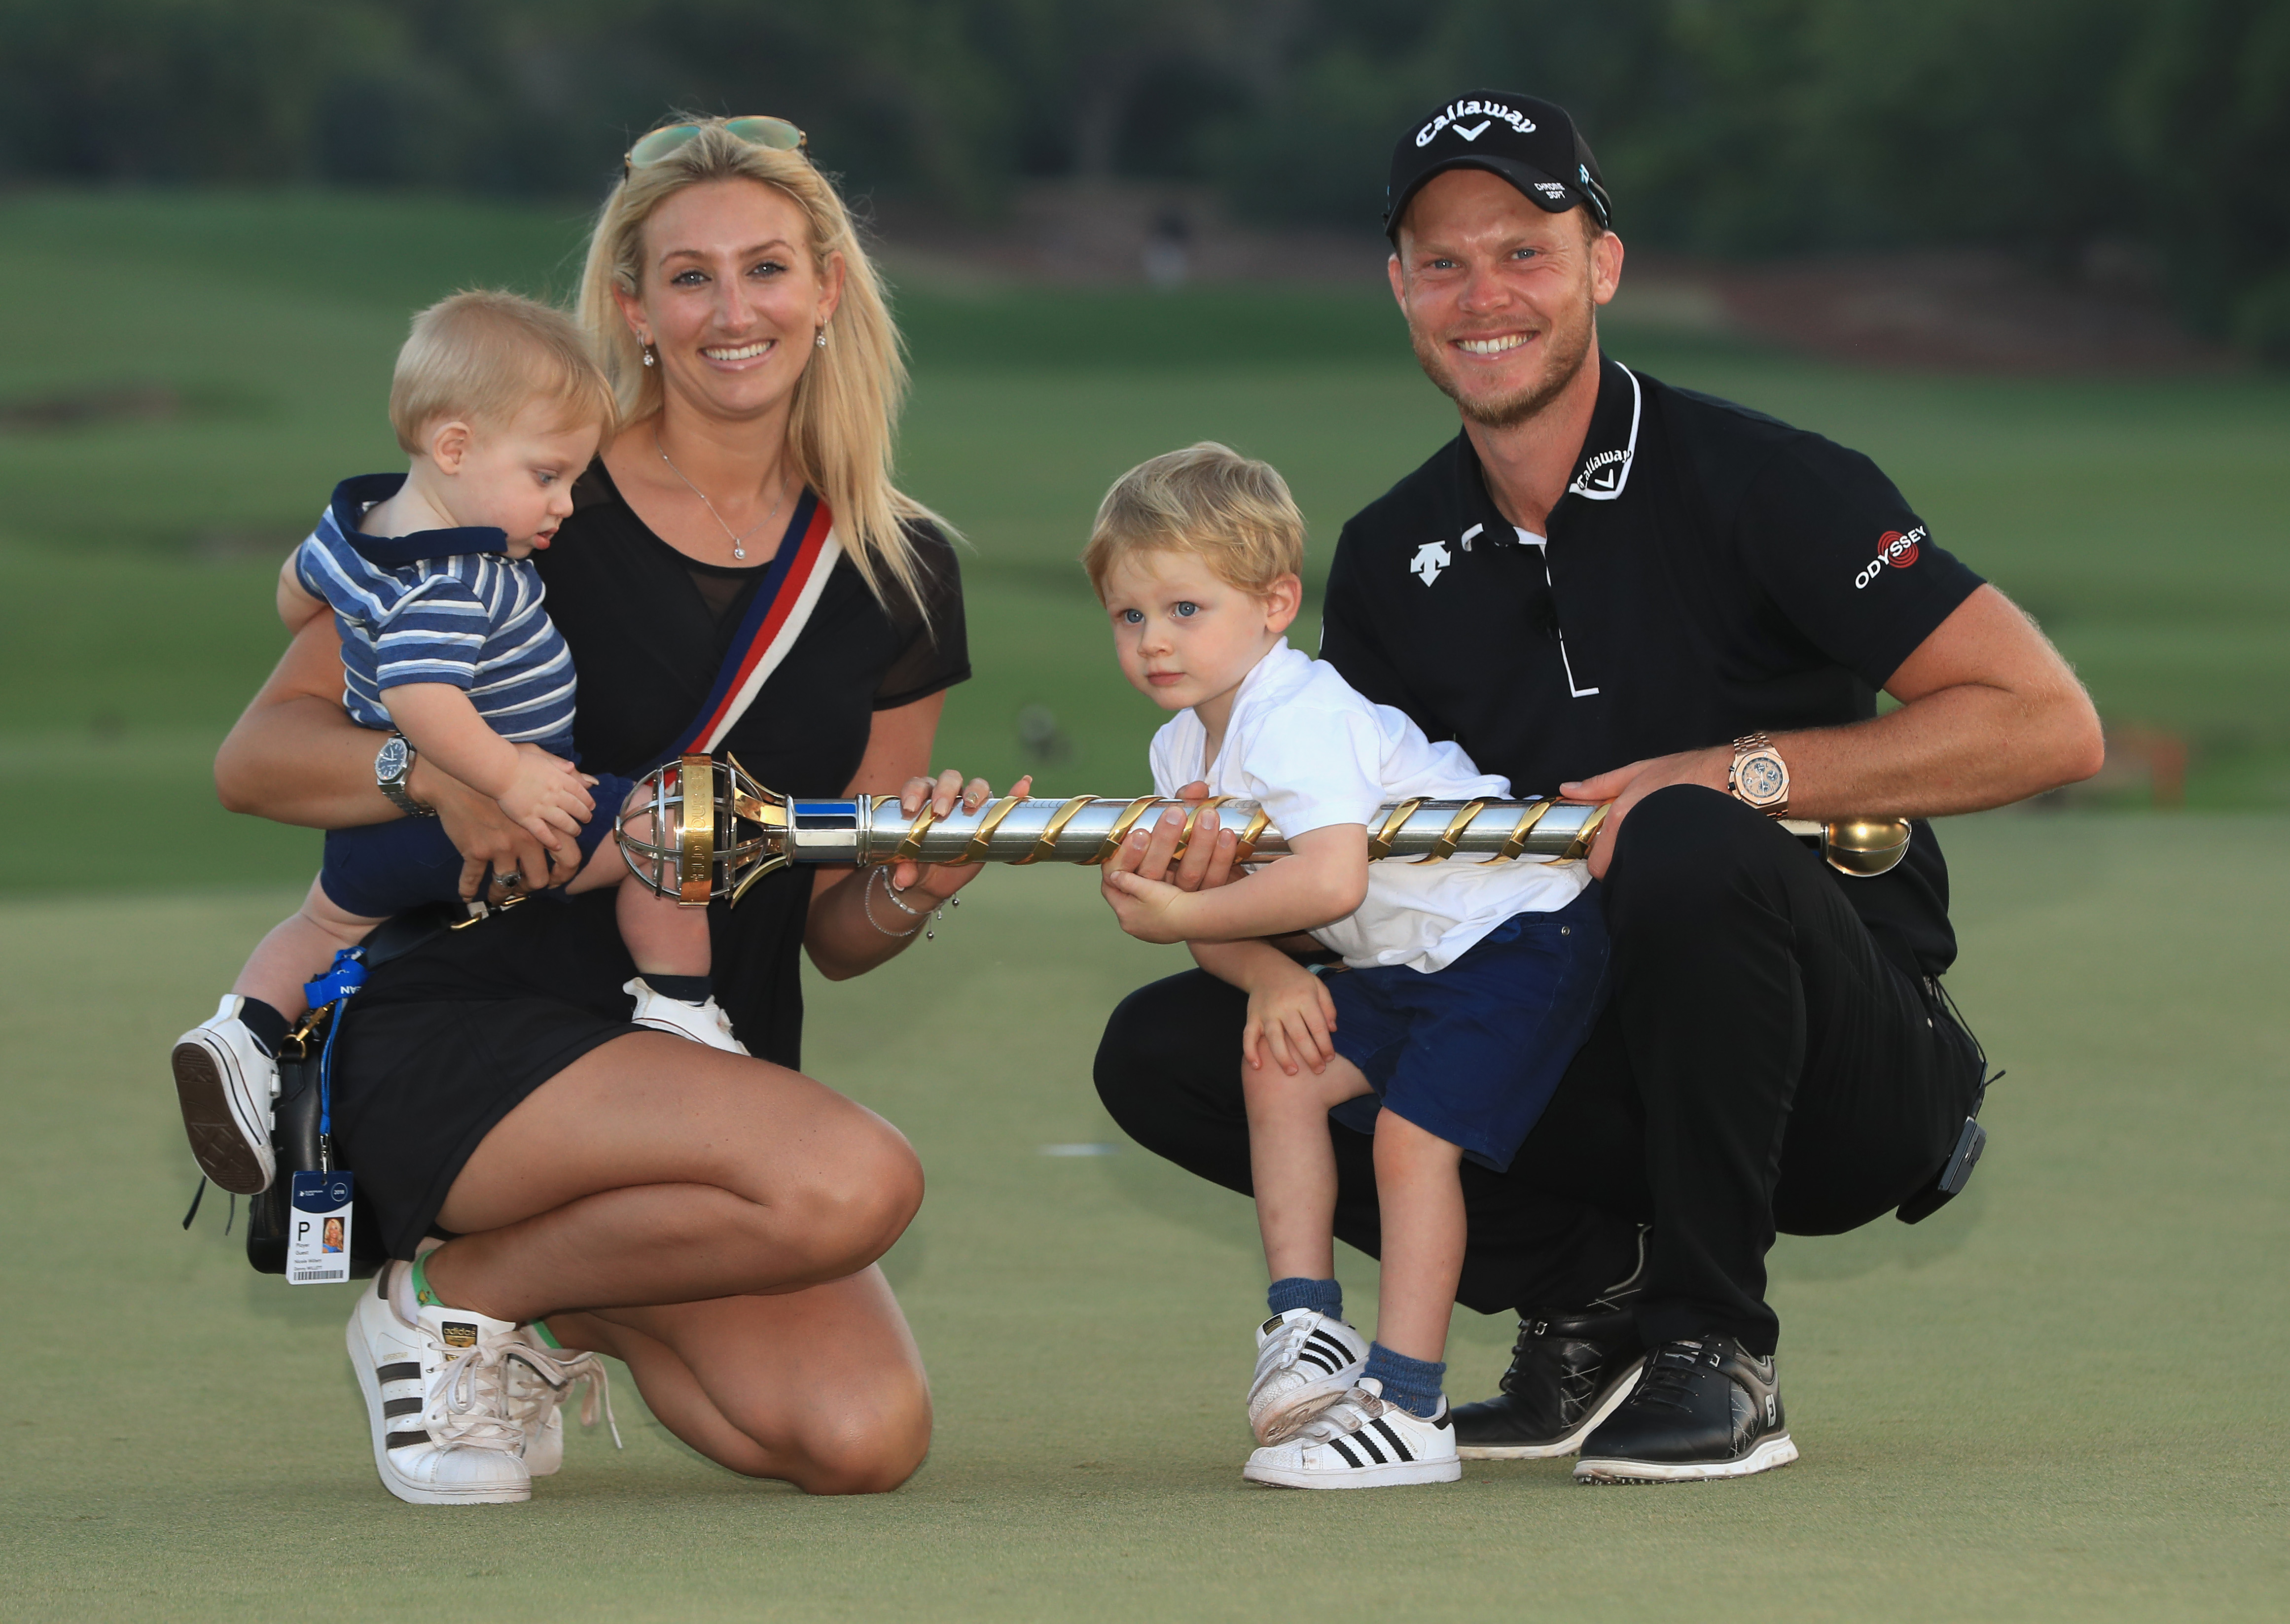 DUBAI, UNITED ARAB EMIRATES - NOVEMBER 18: Danny Willett of England poses with his wife Nicole Willett after winning the DP World Tour Championship at Jumeirah Golf Estates on November 18, 2018 in Dubai, United Arab Emirates. (Photo by Andrew Redington/Getty Images)